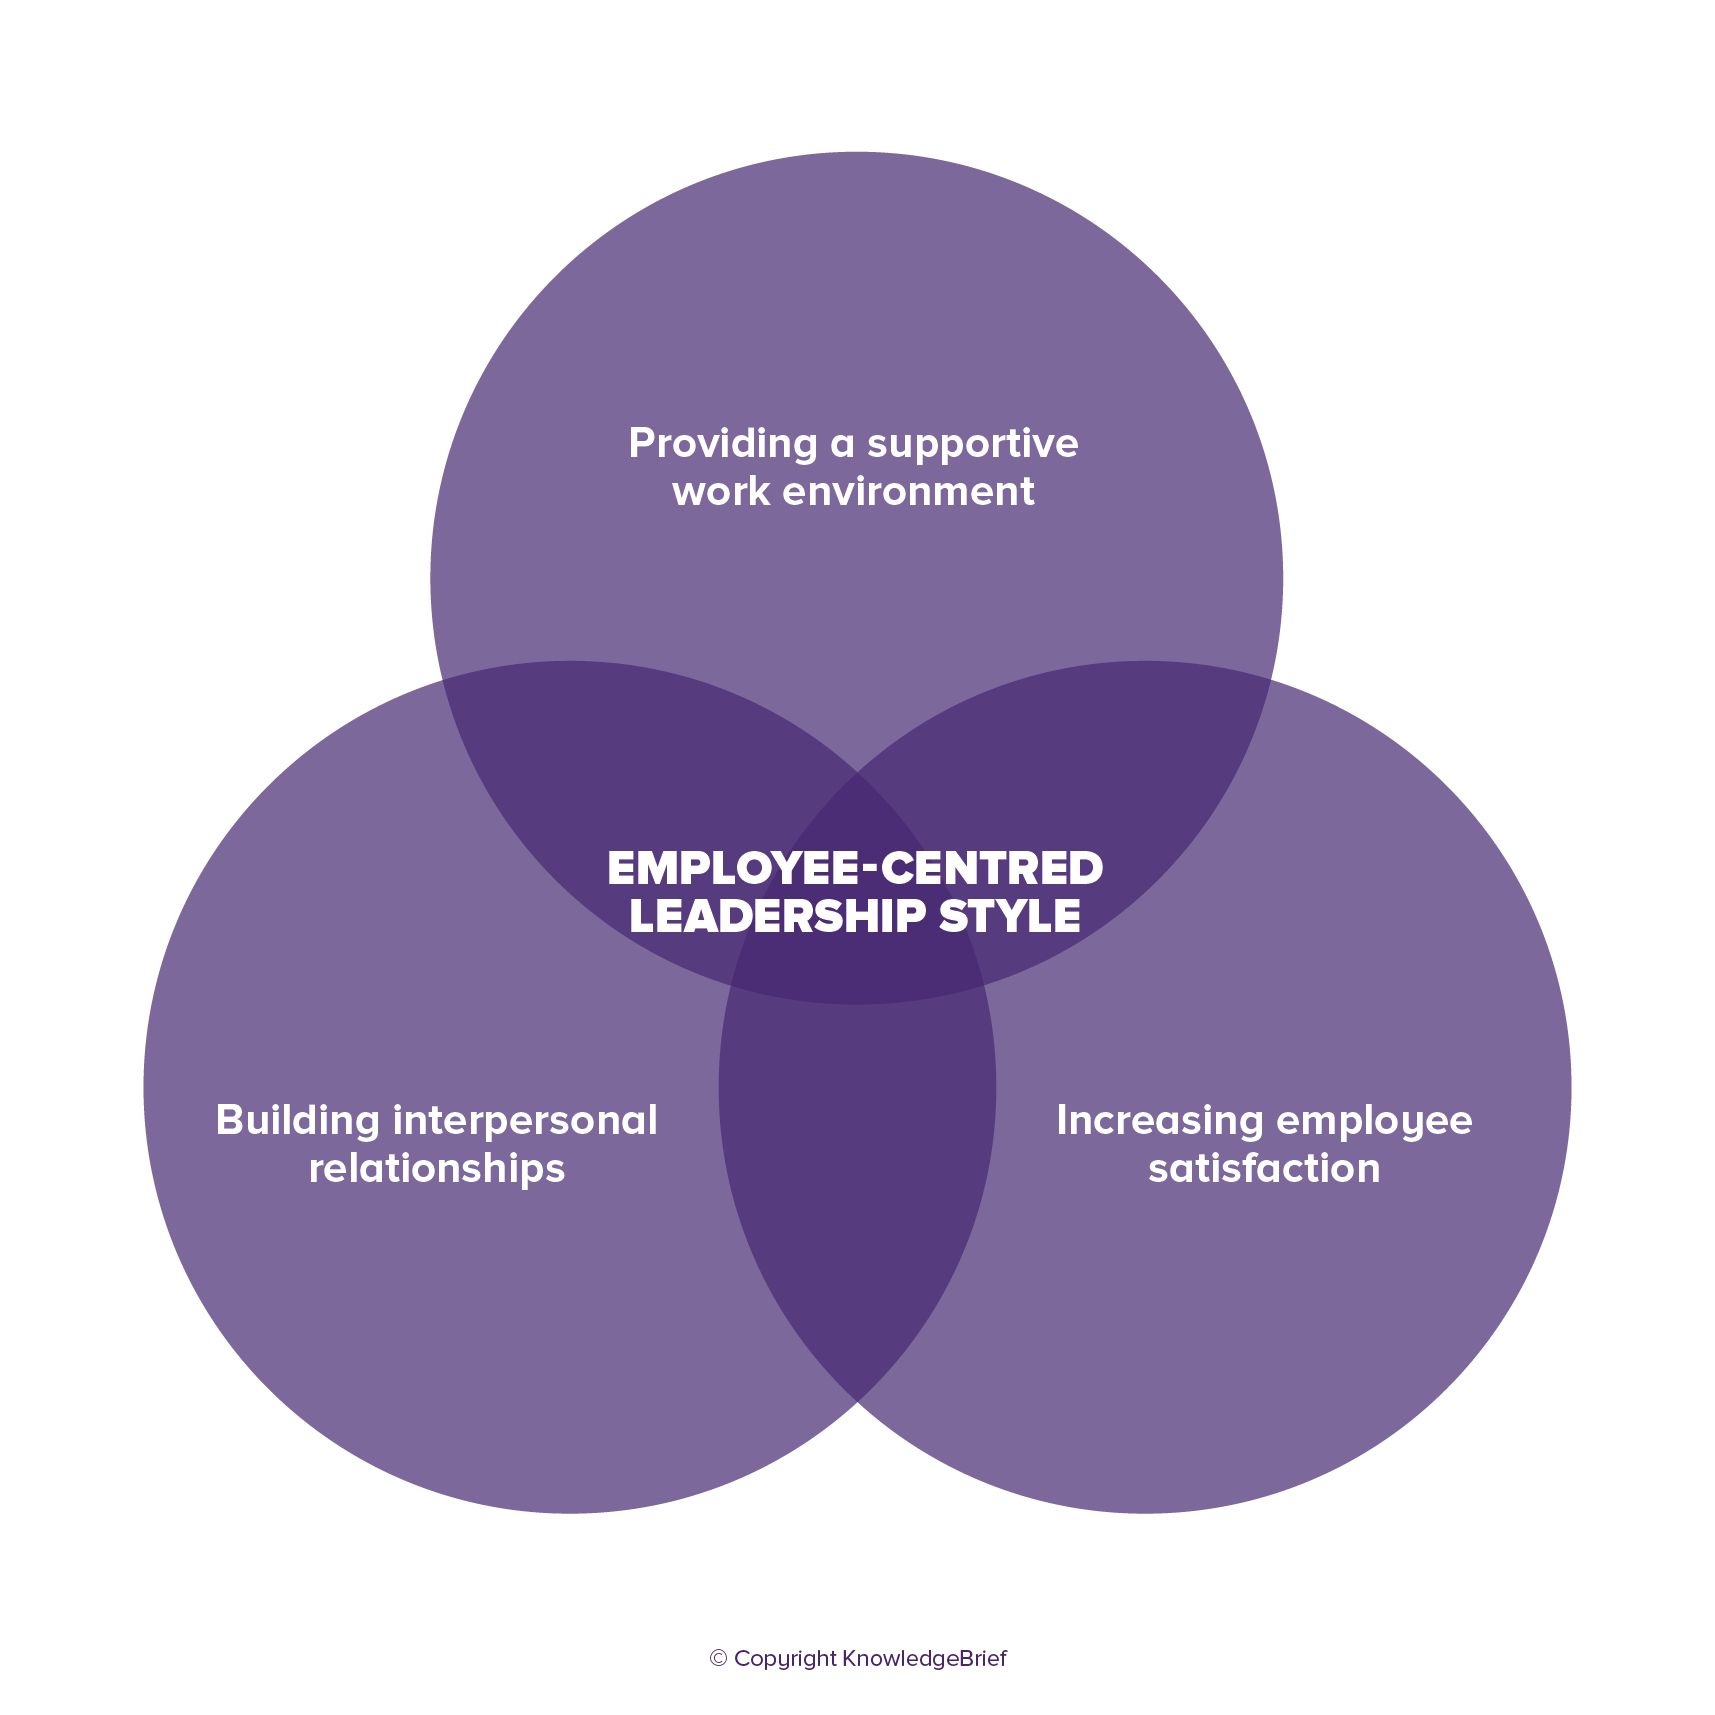 Employee-centred Leadership Style - What is it? Definition